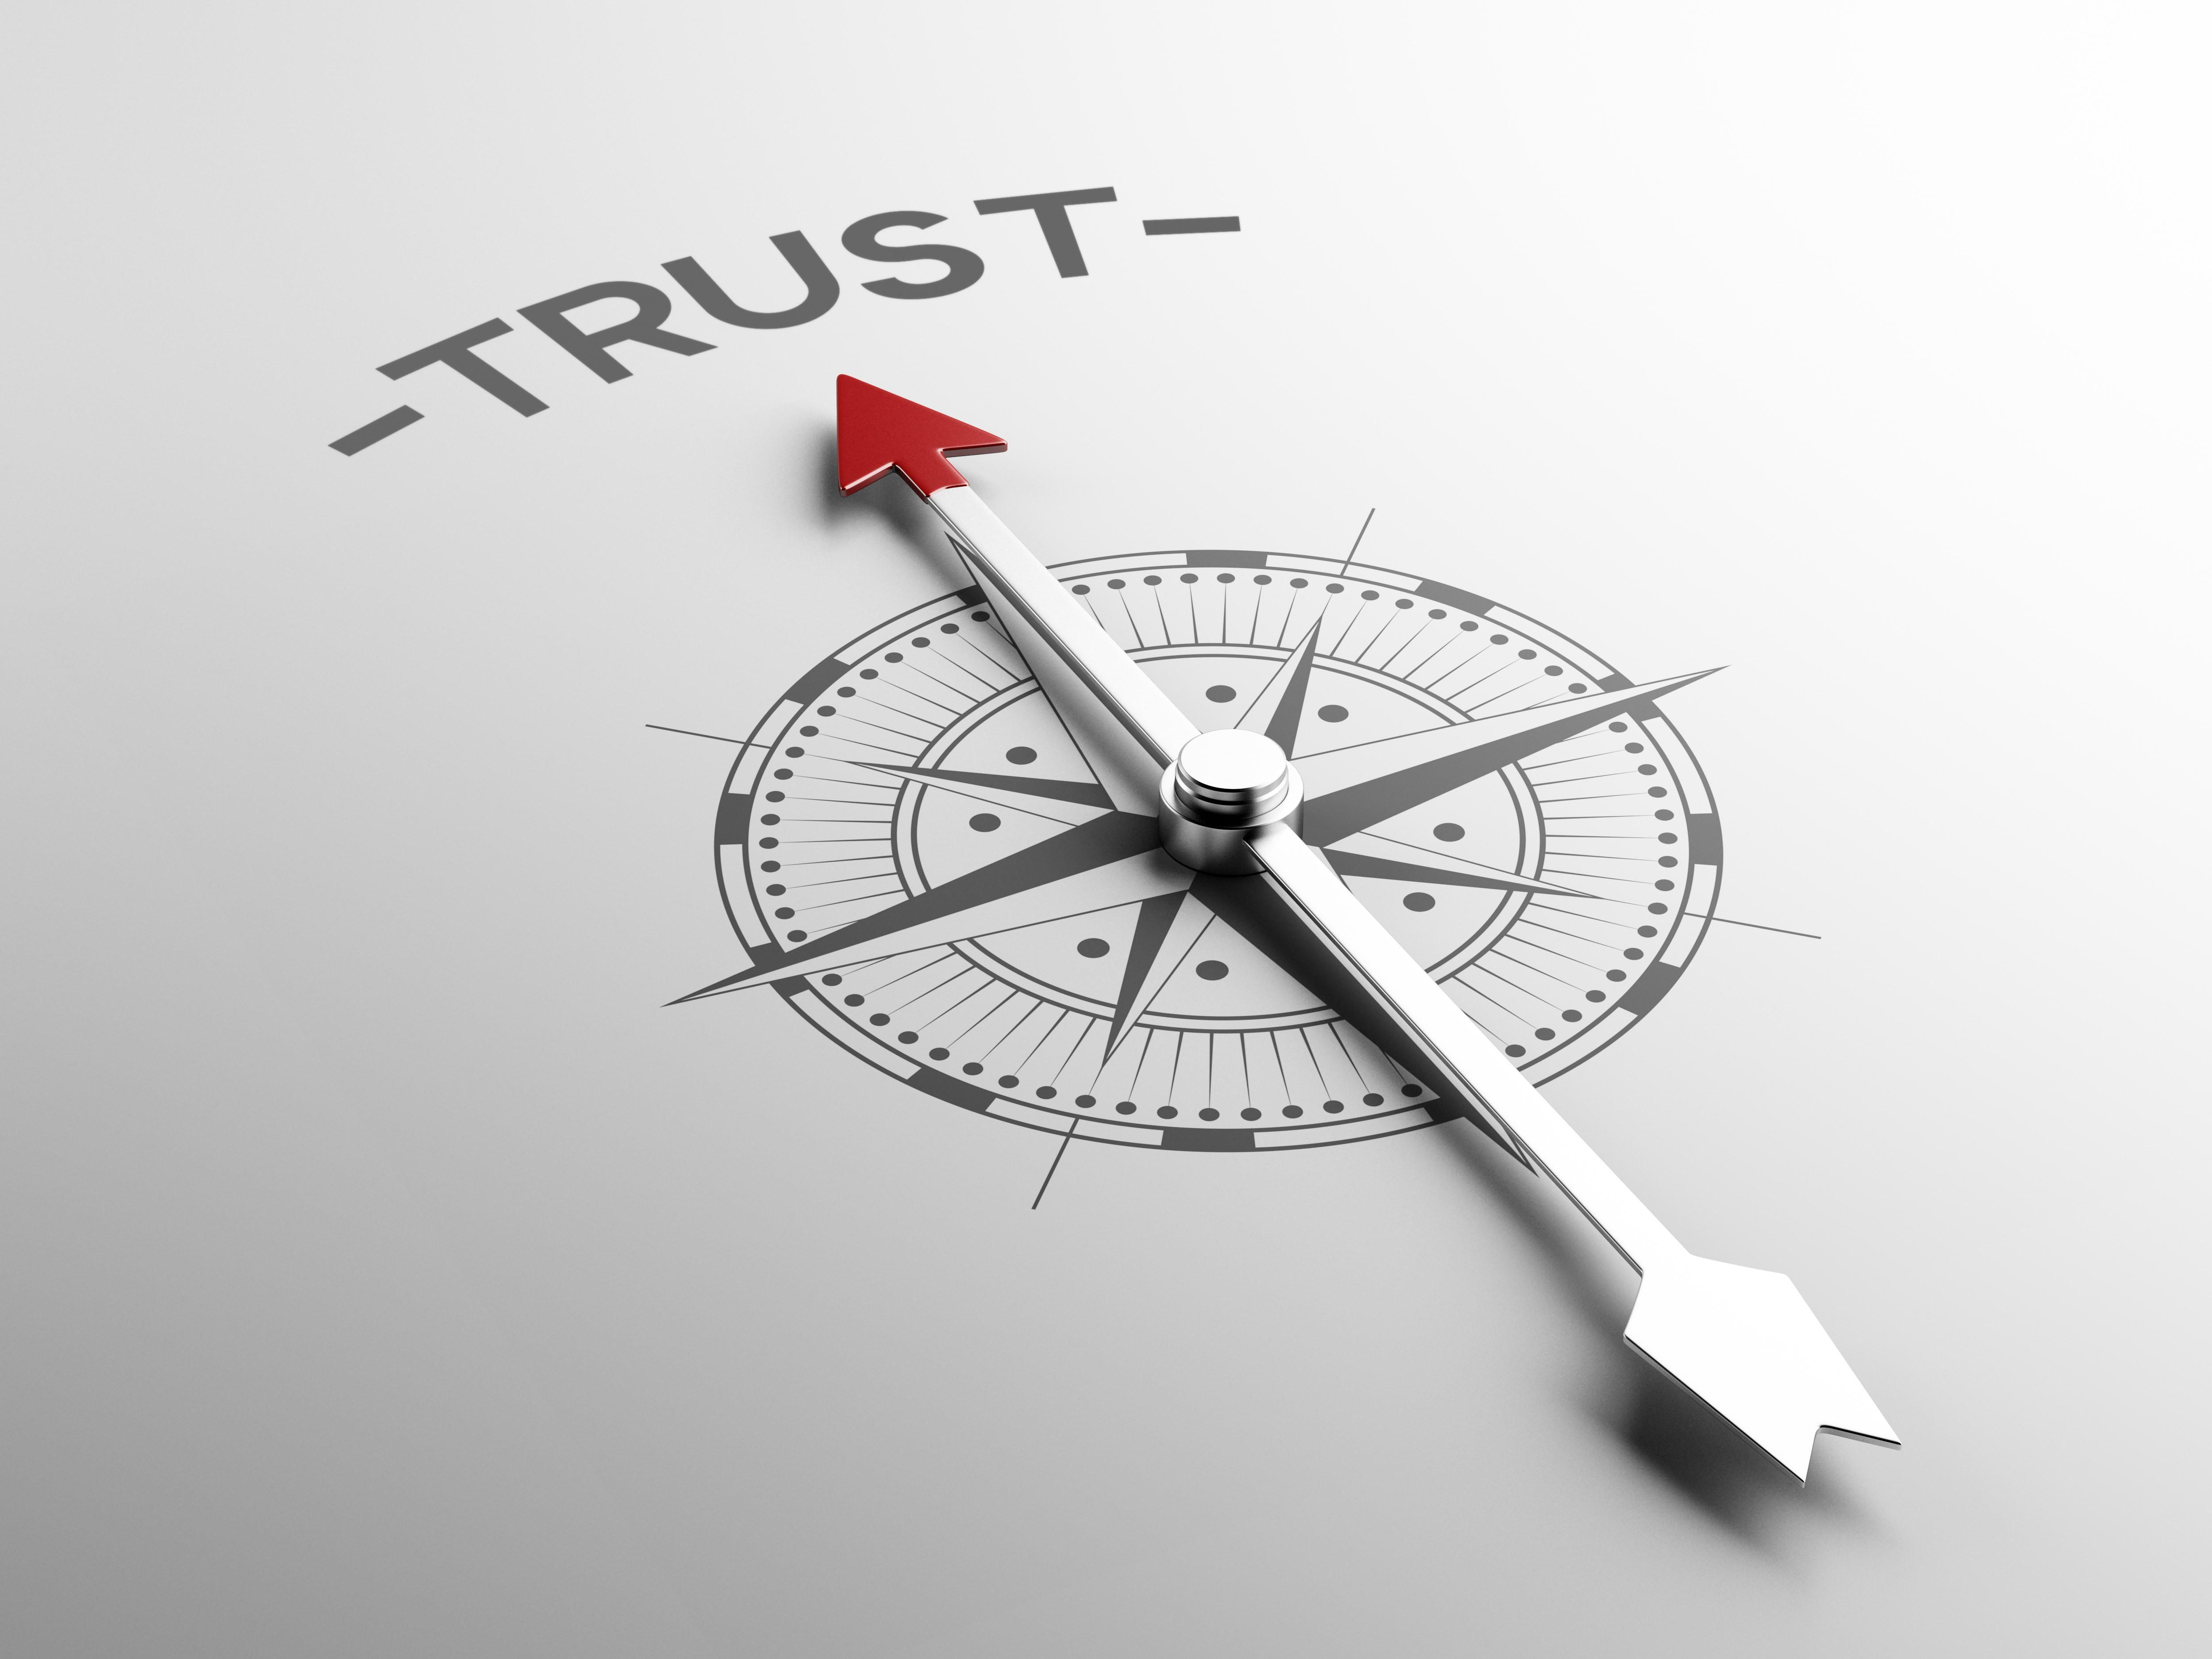 Trust with compass Shutterstock Image